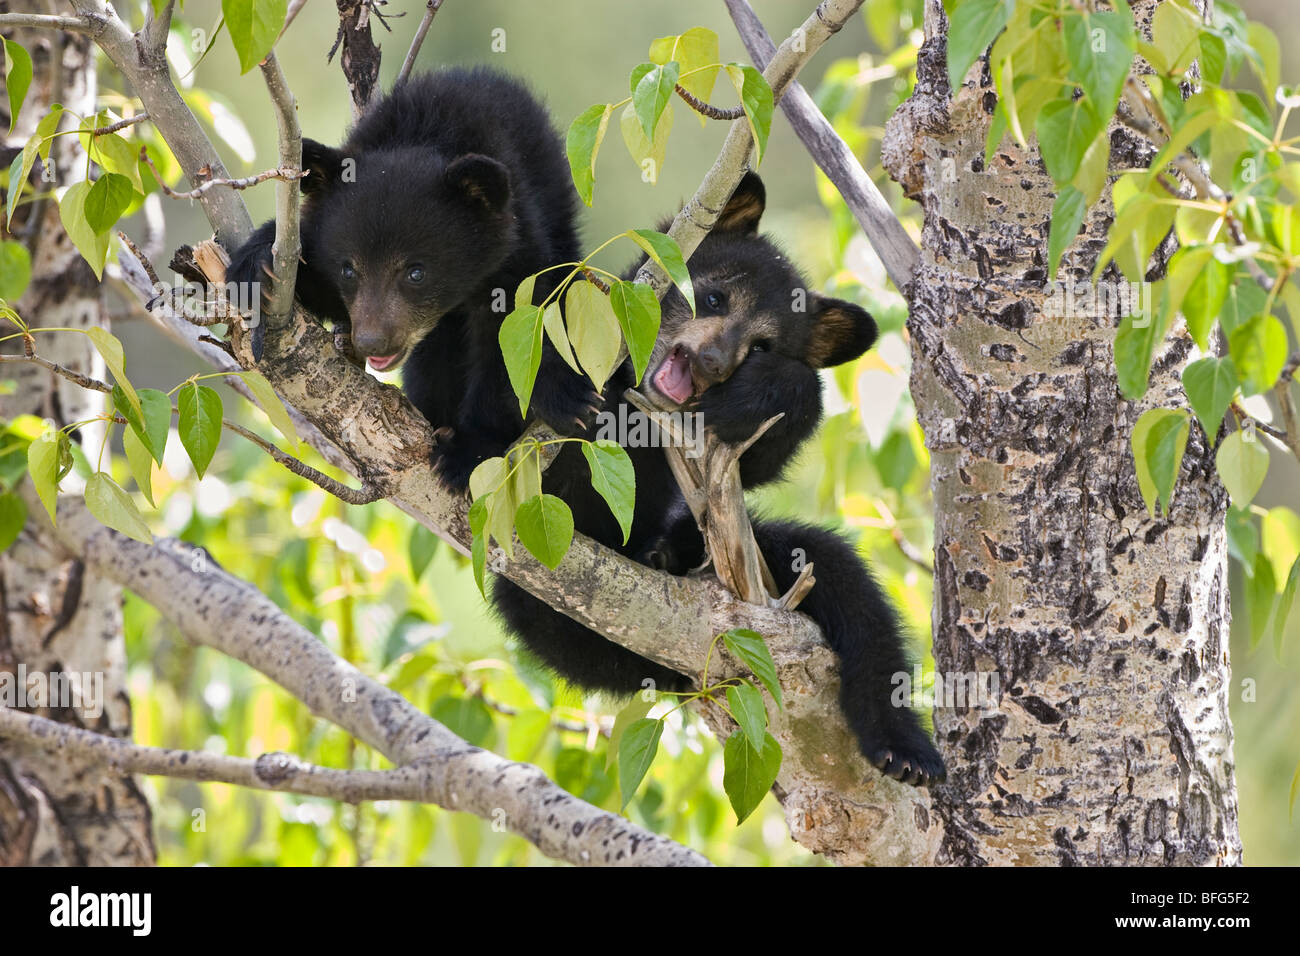 Black bear cubs (Ursus americanus) in tree (Populus sp.) Jasper National Park Alberta Canada. female bear sent her - Stock Image